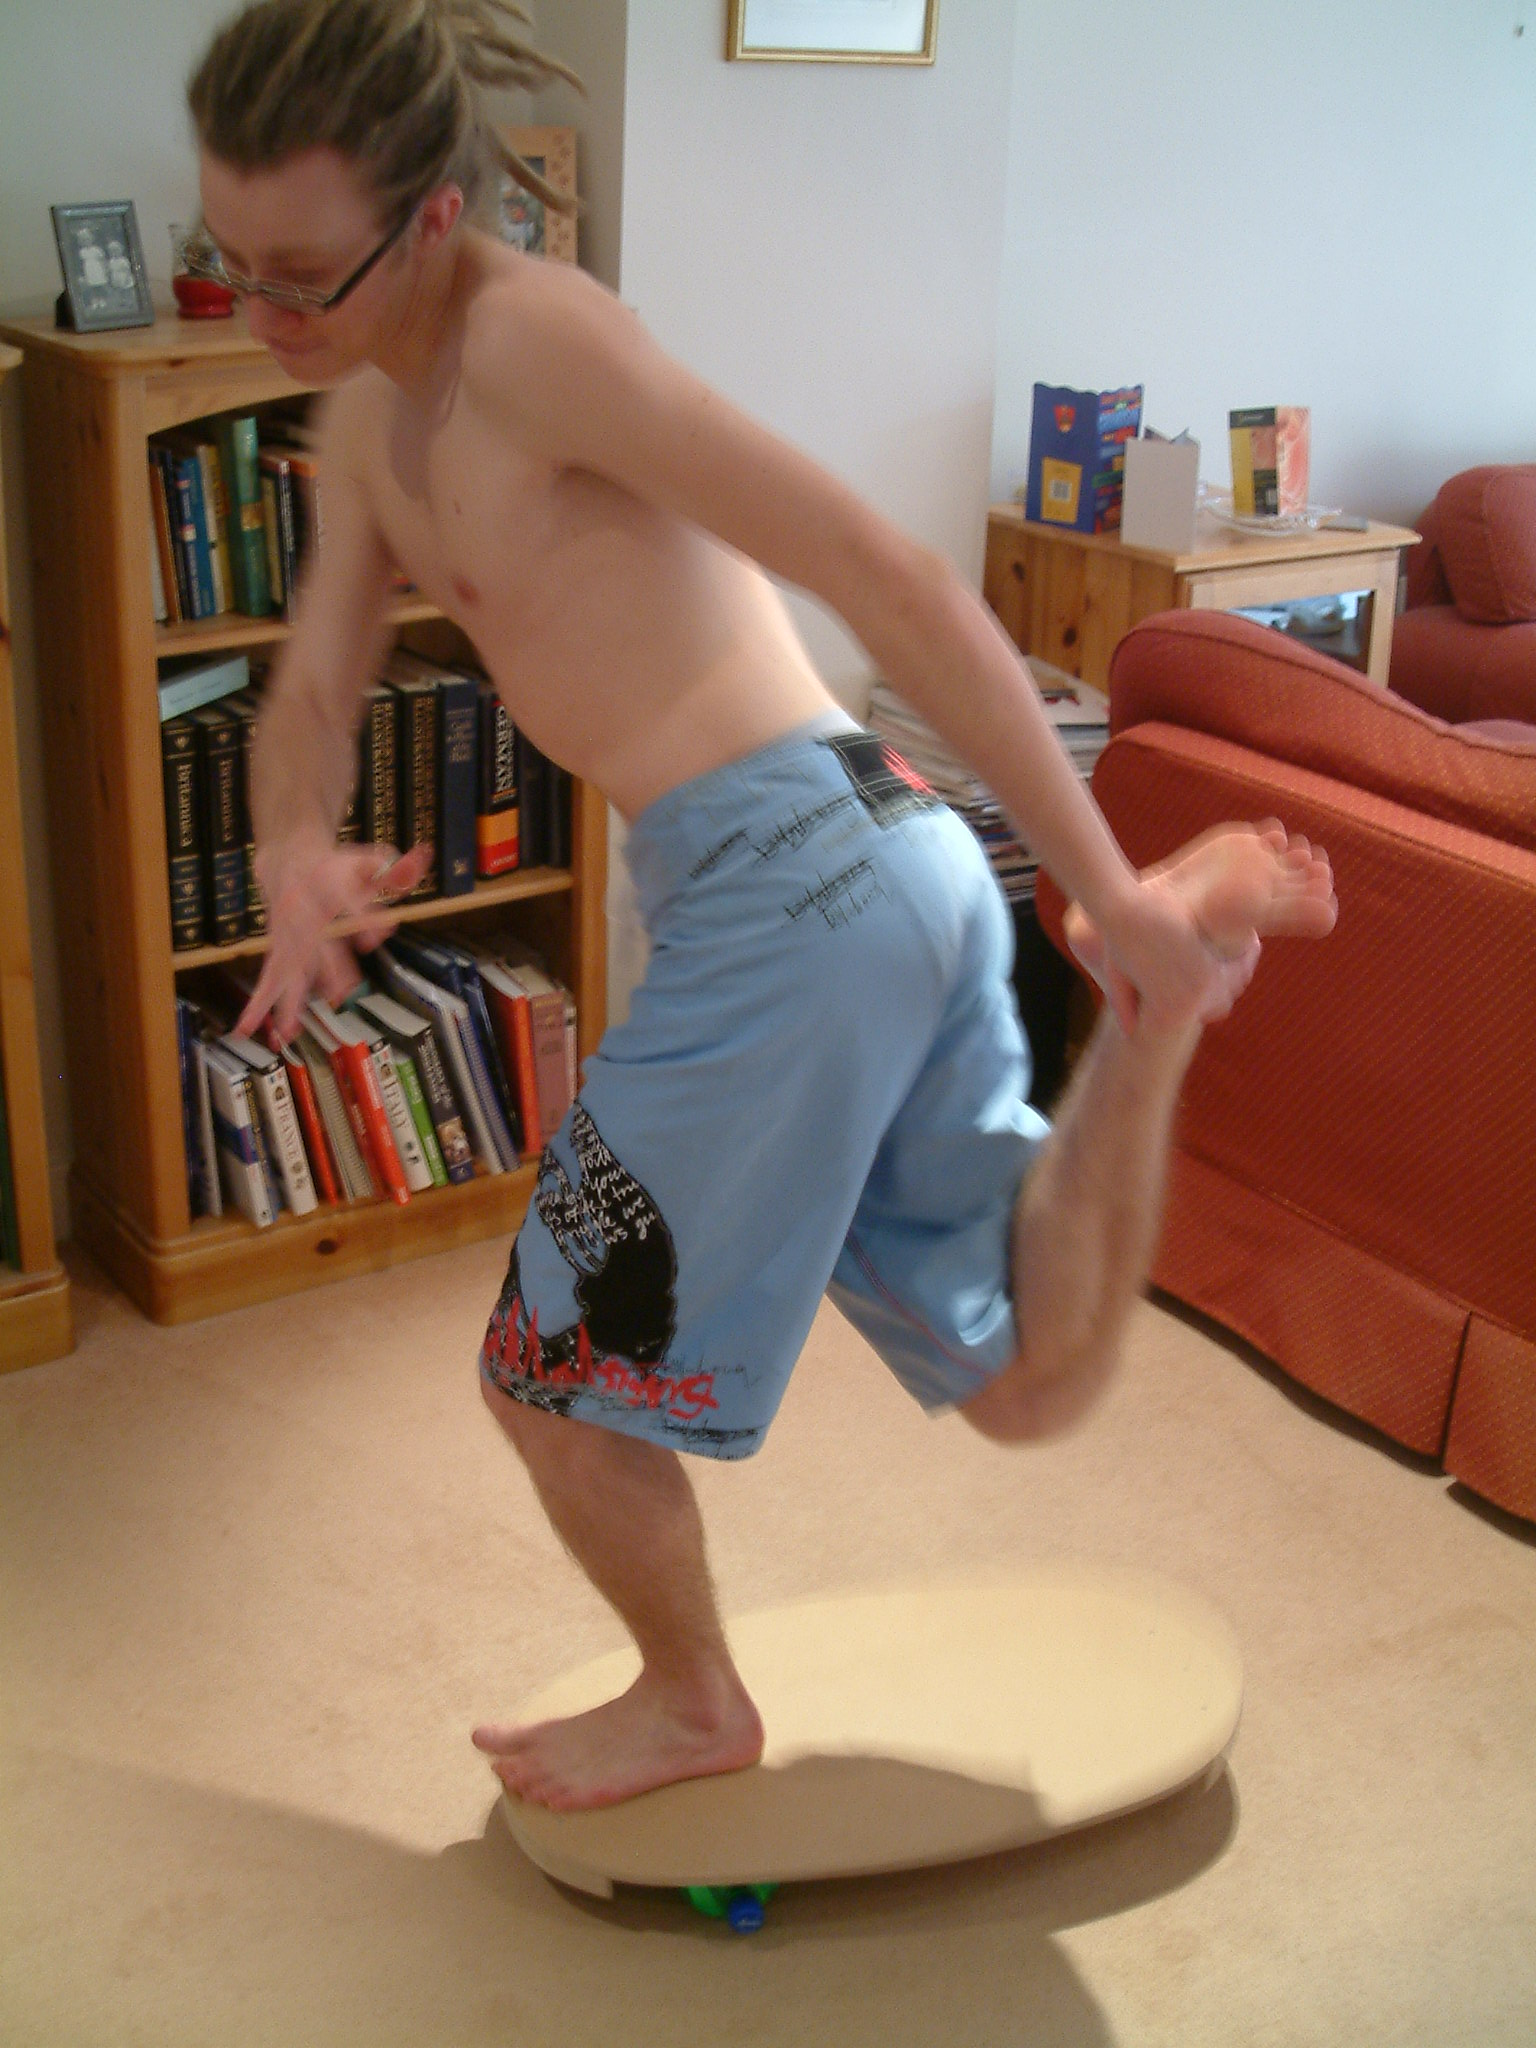 Balance board for sports training and general fun!